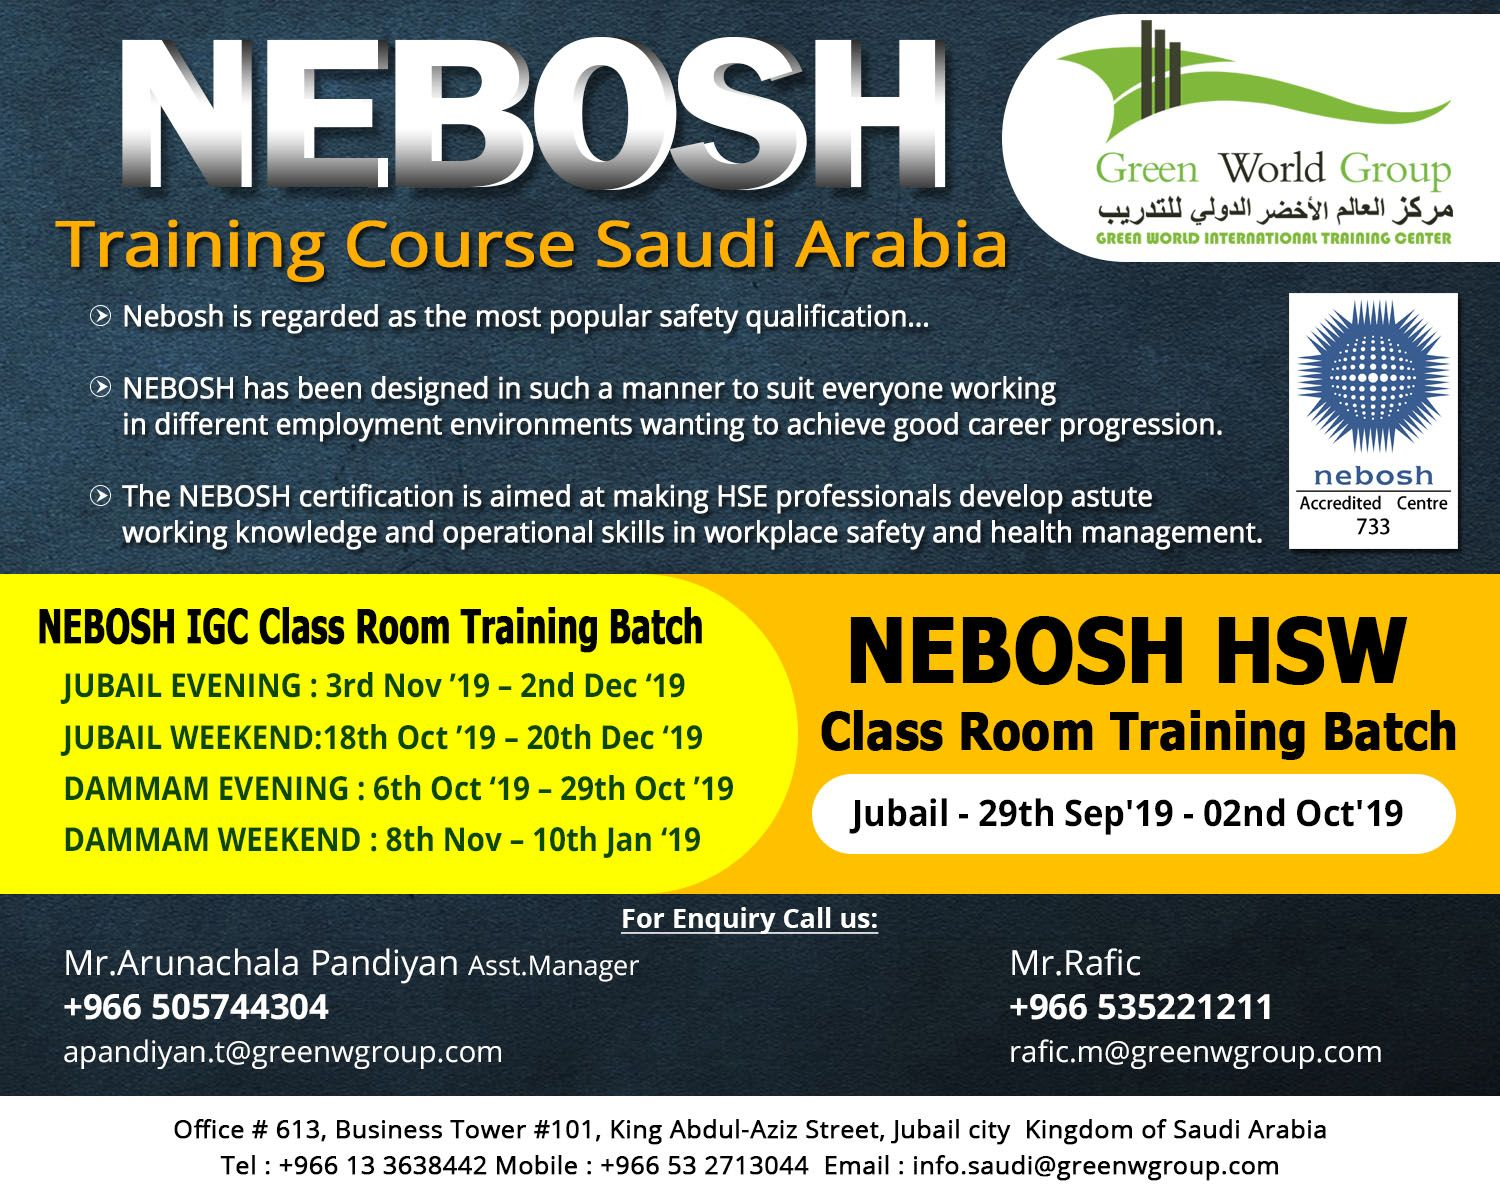 NEBOSH Course in Saudi Arabia Occupational health and